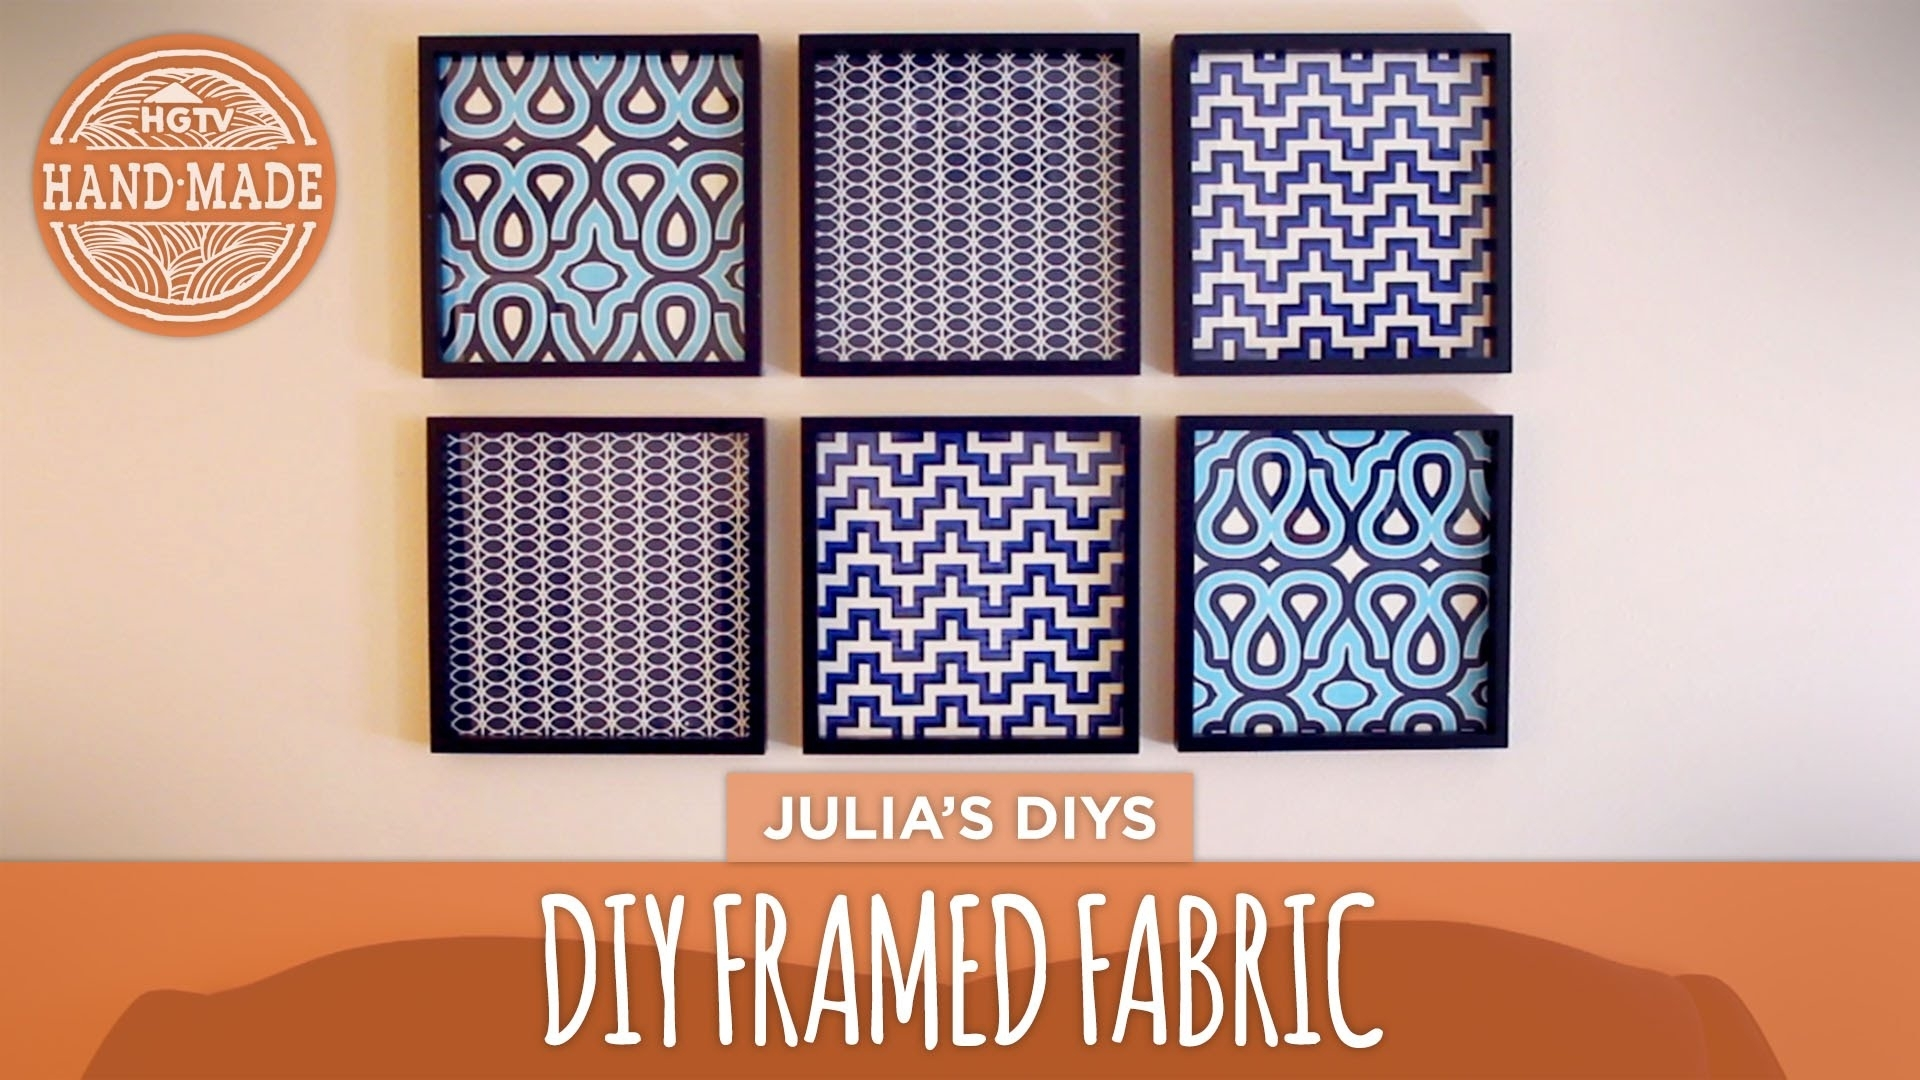 Diy Framed Fabric Gallery Wall – Hgtv Handmade – Youtube With Most Up To Date Fabric Wall Accents (Gallery 9 of 15)